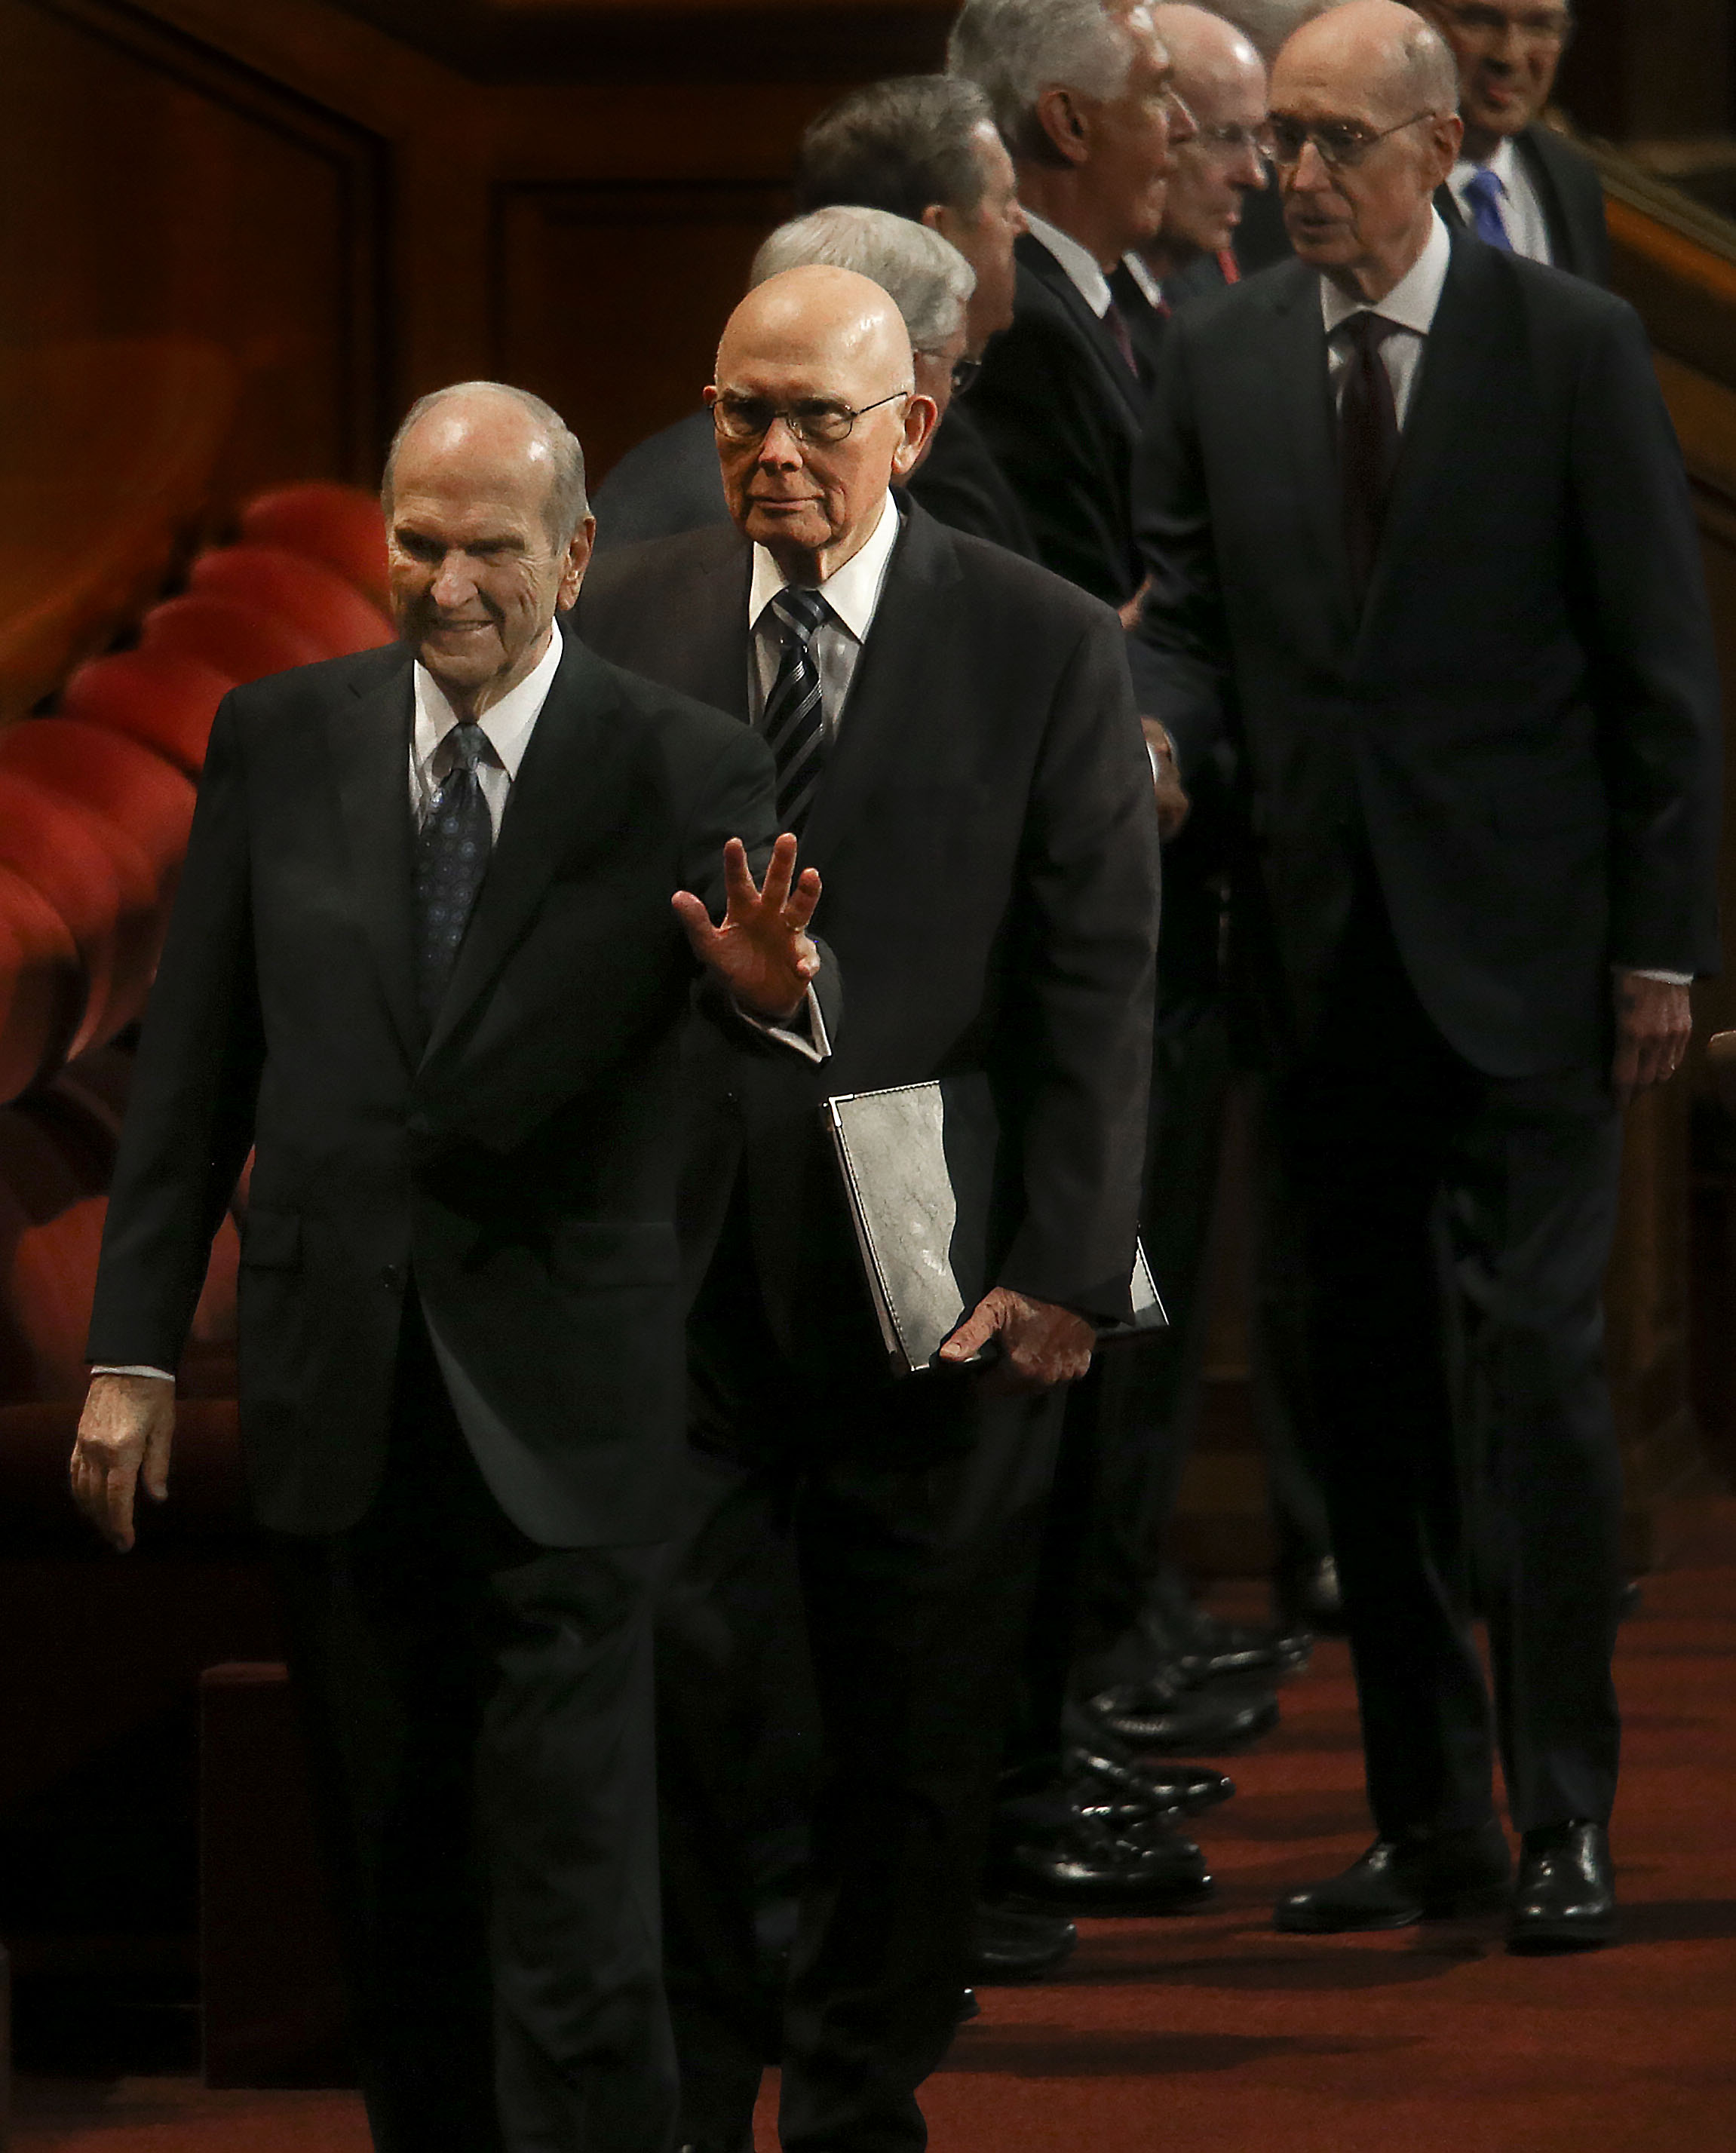 President Russell M. Nelson, of The Church of Jesus Christ of Latter-day Saints, front, and his counselors, President Dallin H. Oaks, first counselor in the First Presidency, and President Henry B. Eyring, second counselor in the First Presidency, enter the Conference Center for the Sunday afternoon session of general conference in the Conference Center in Salt Lake City on Sunday, Oct. 6, 2019.